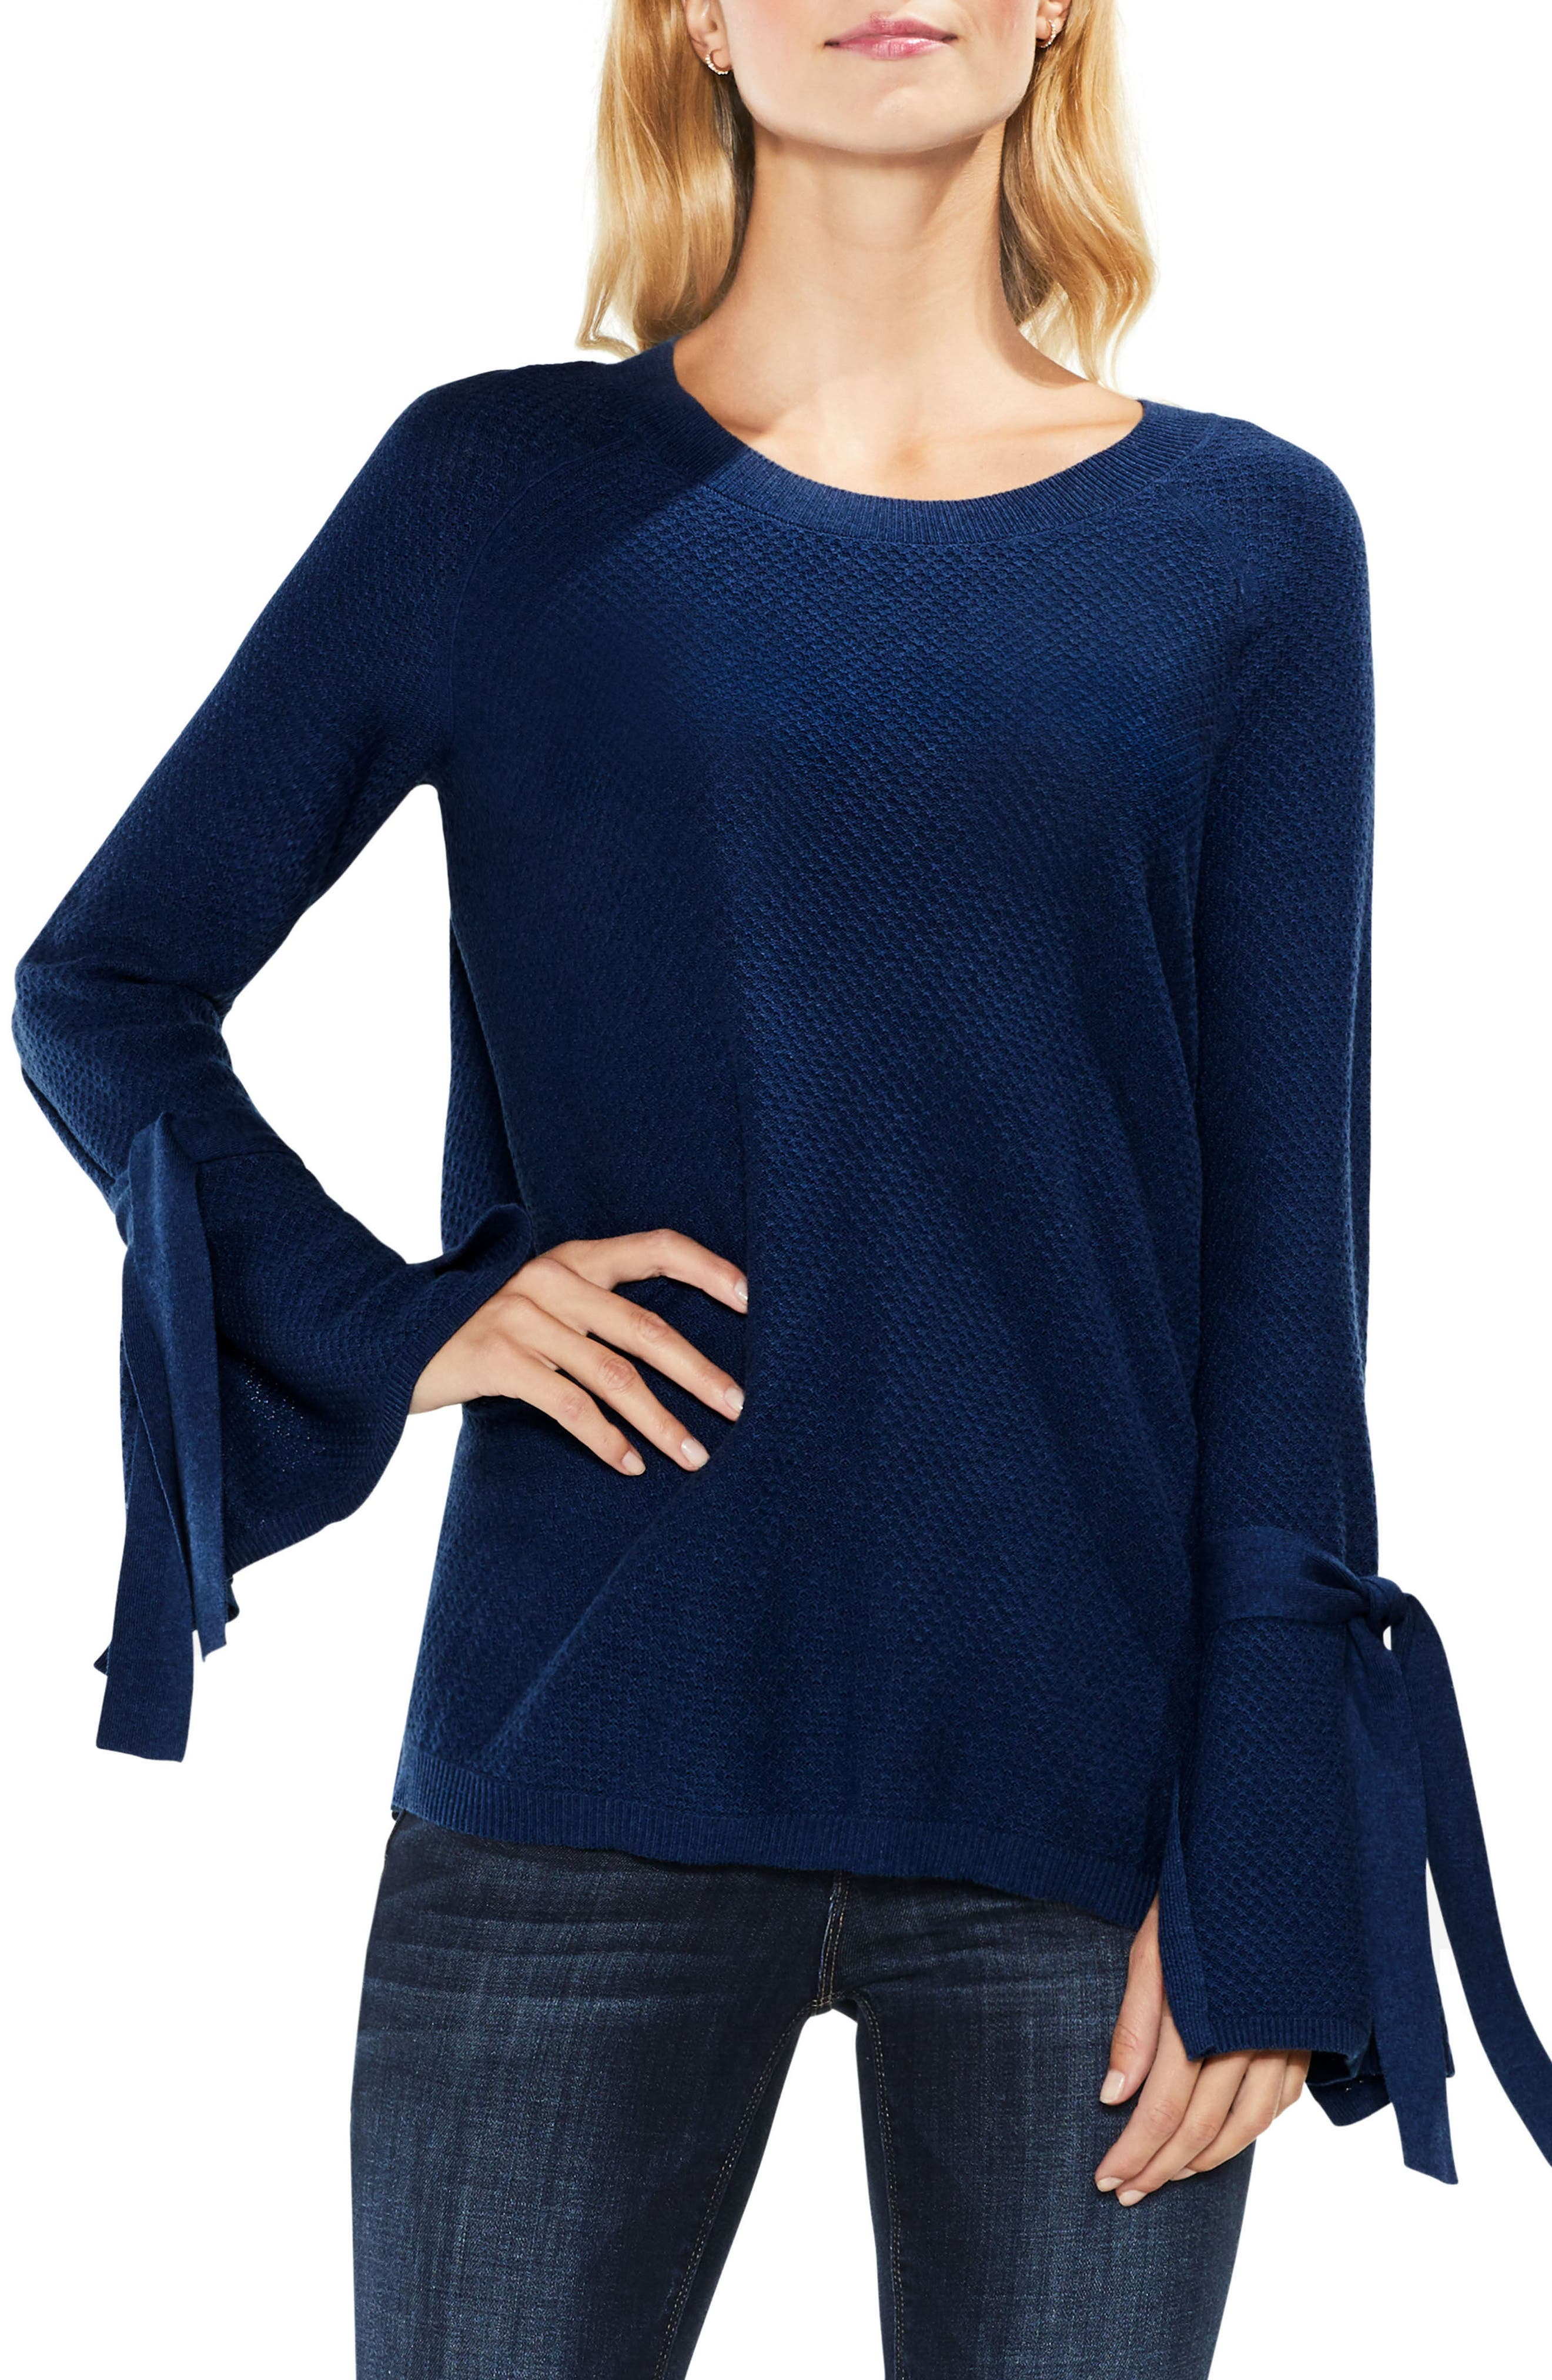 Main Image - Two by Vince Camuto Texture Stitch Tie-Sleeve Top (Regular & Petite)